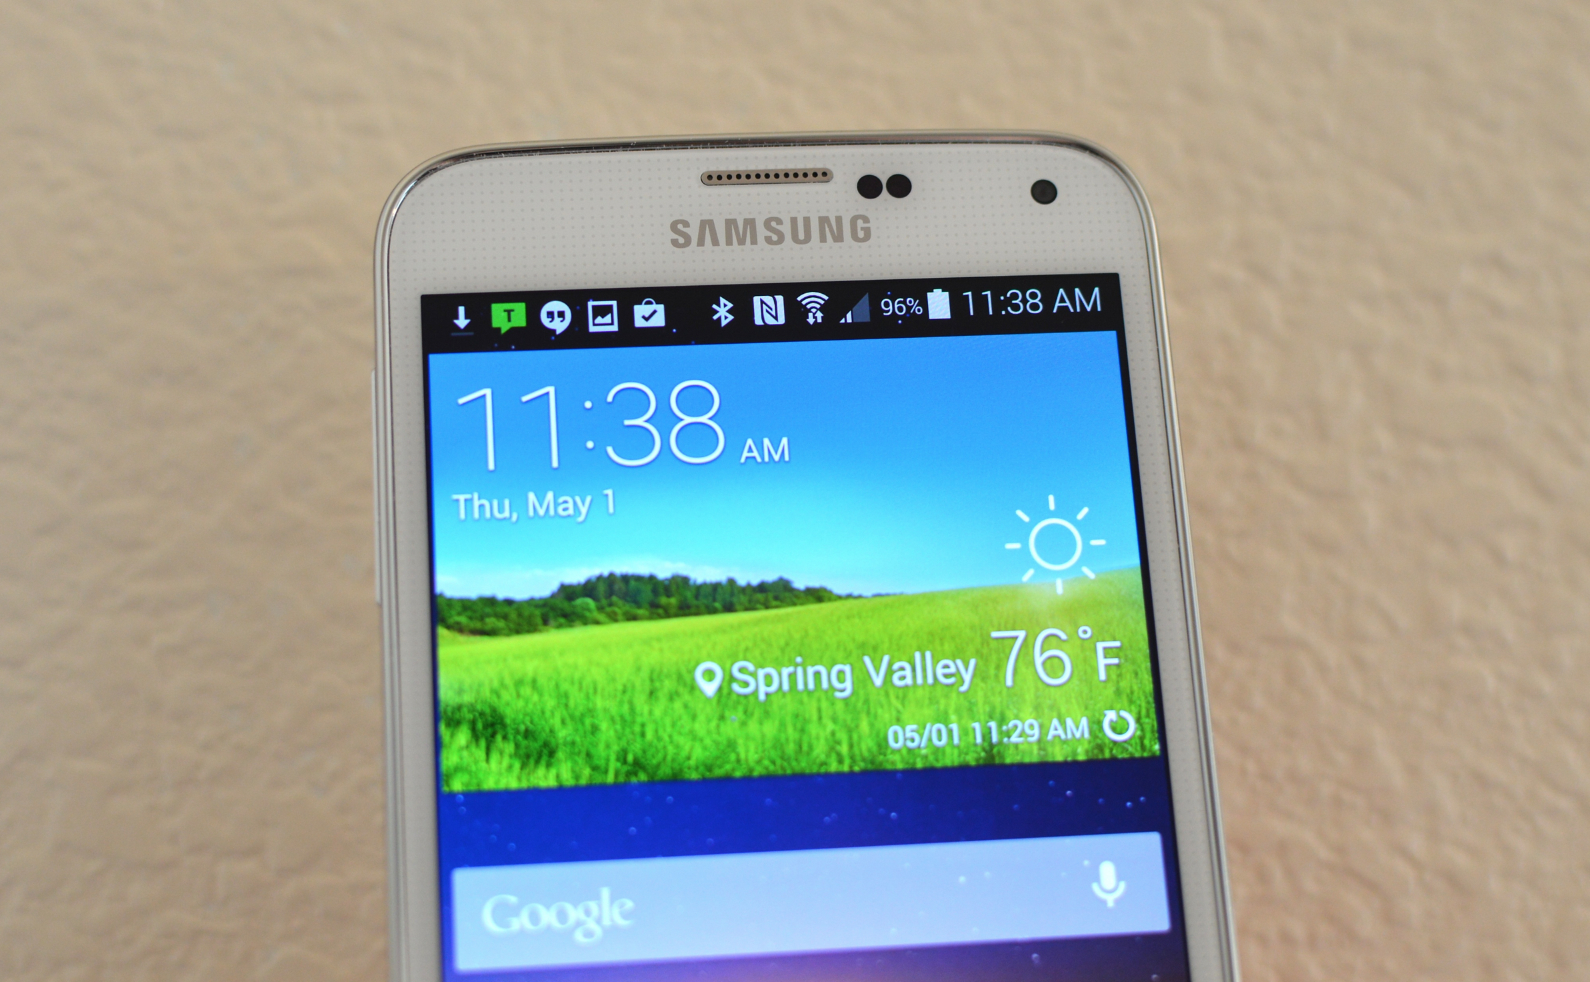 Samsung galaxy s5 notification bar icons explained biocorpaavc Images